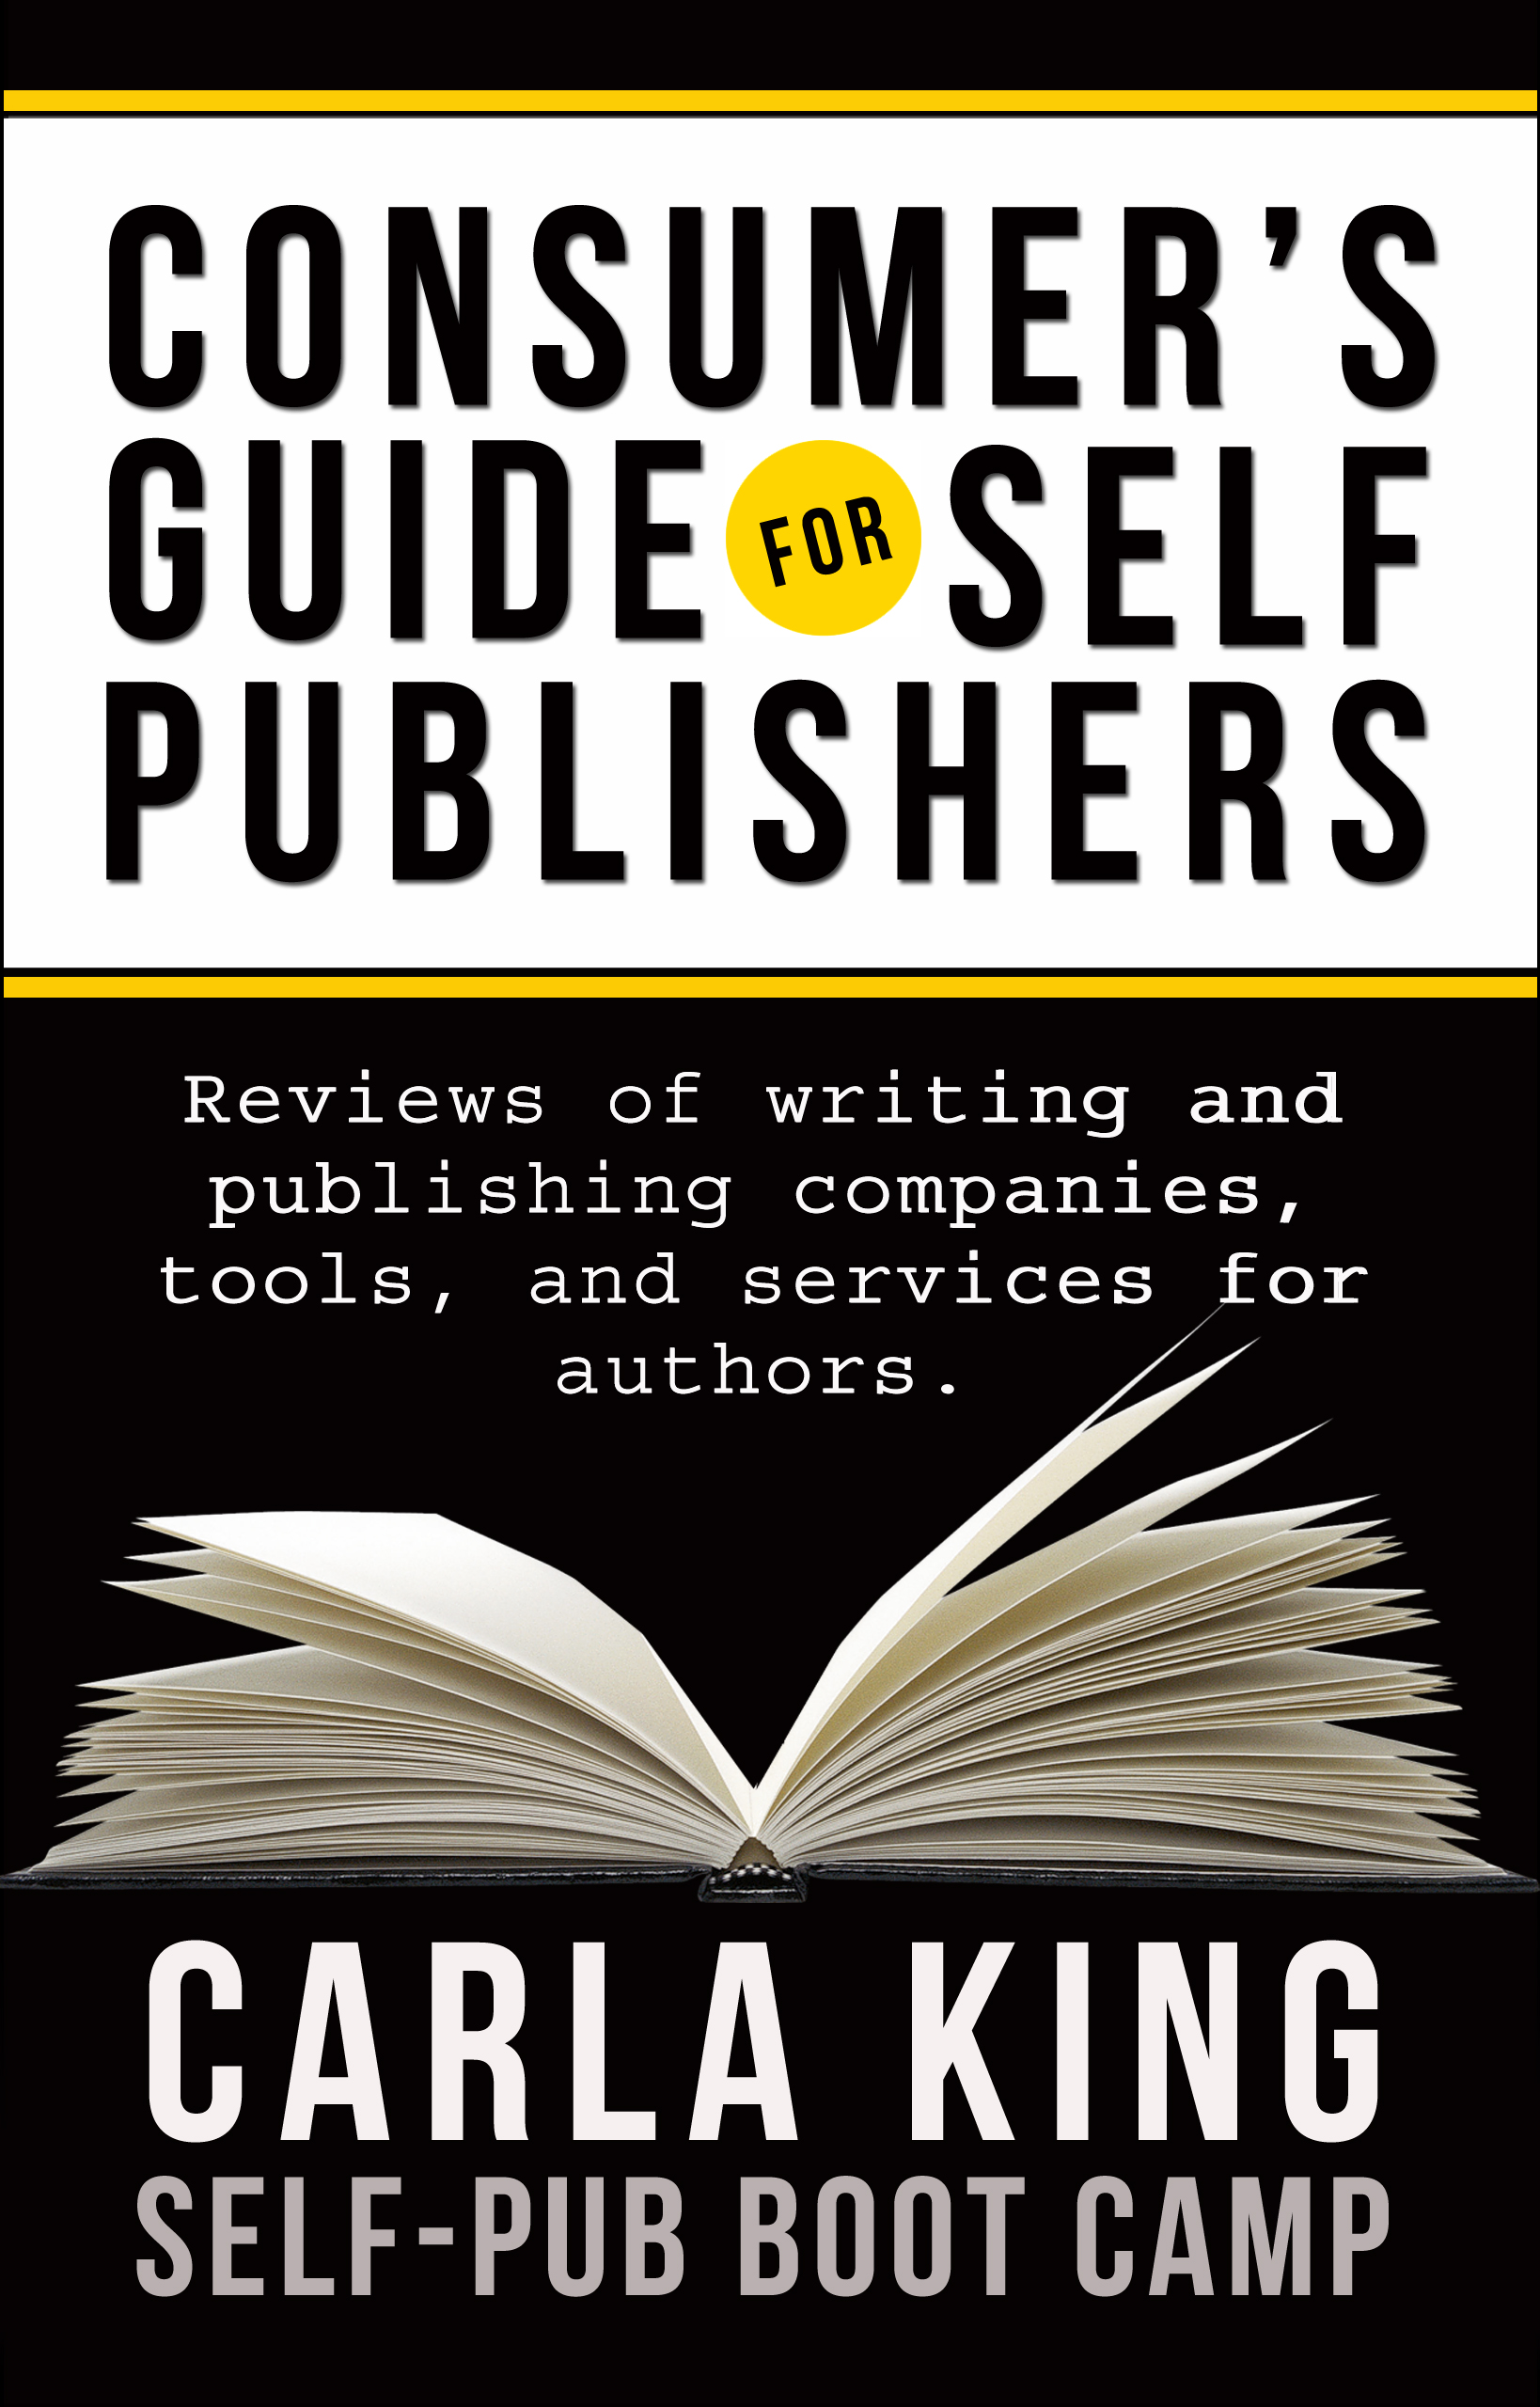 Cover image for A Consumer's Guide for Self-Publishers